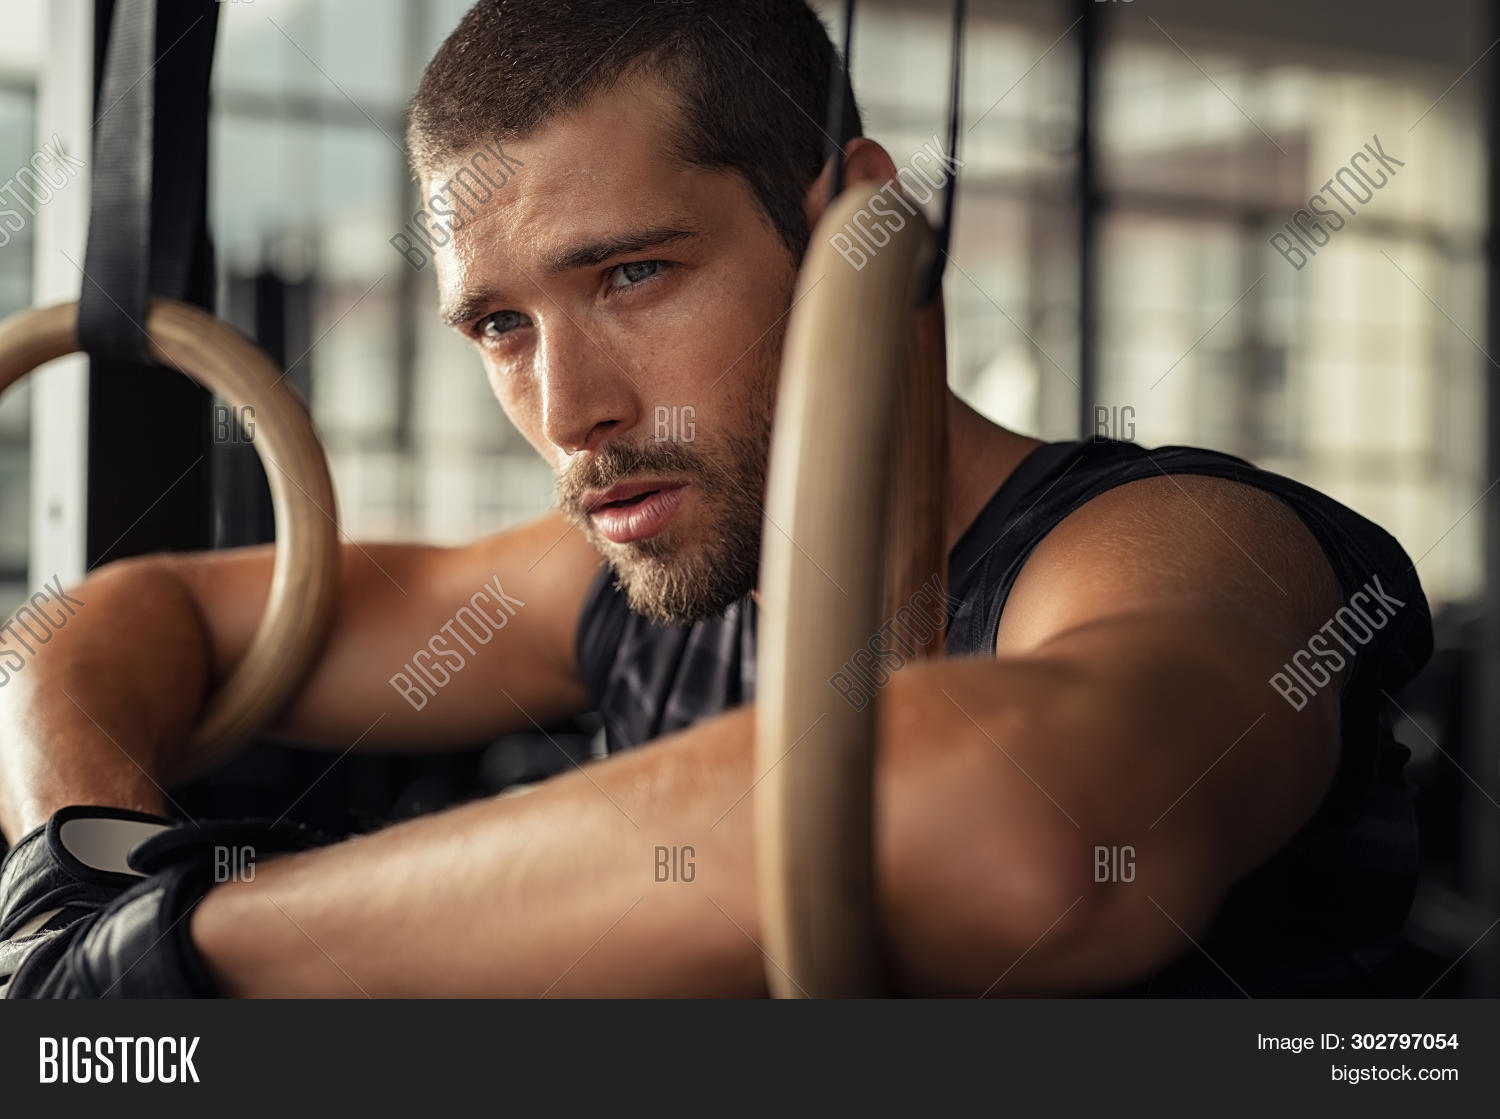 Closeup of young man resting after gymnastic ring exercise at crossfit gym. Fitness guy thinking whi